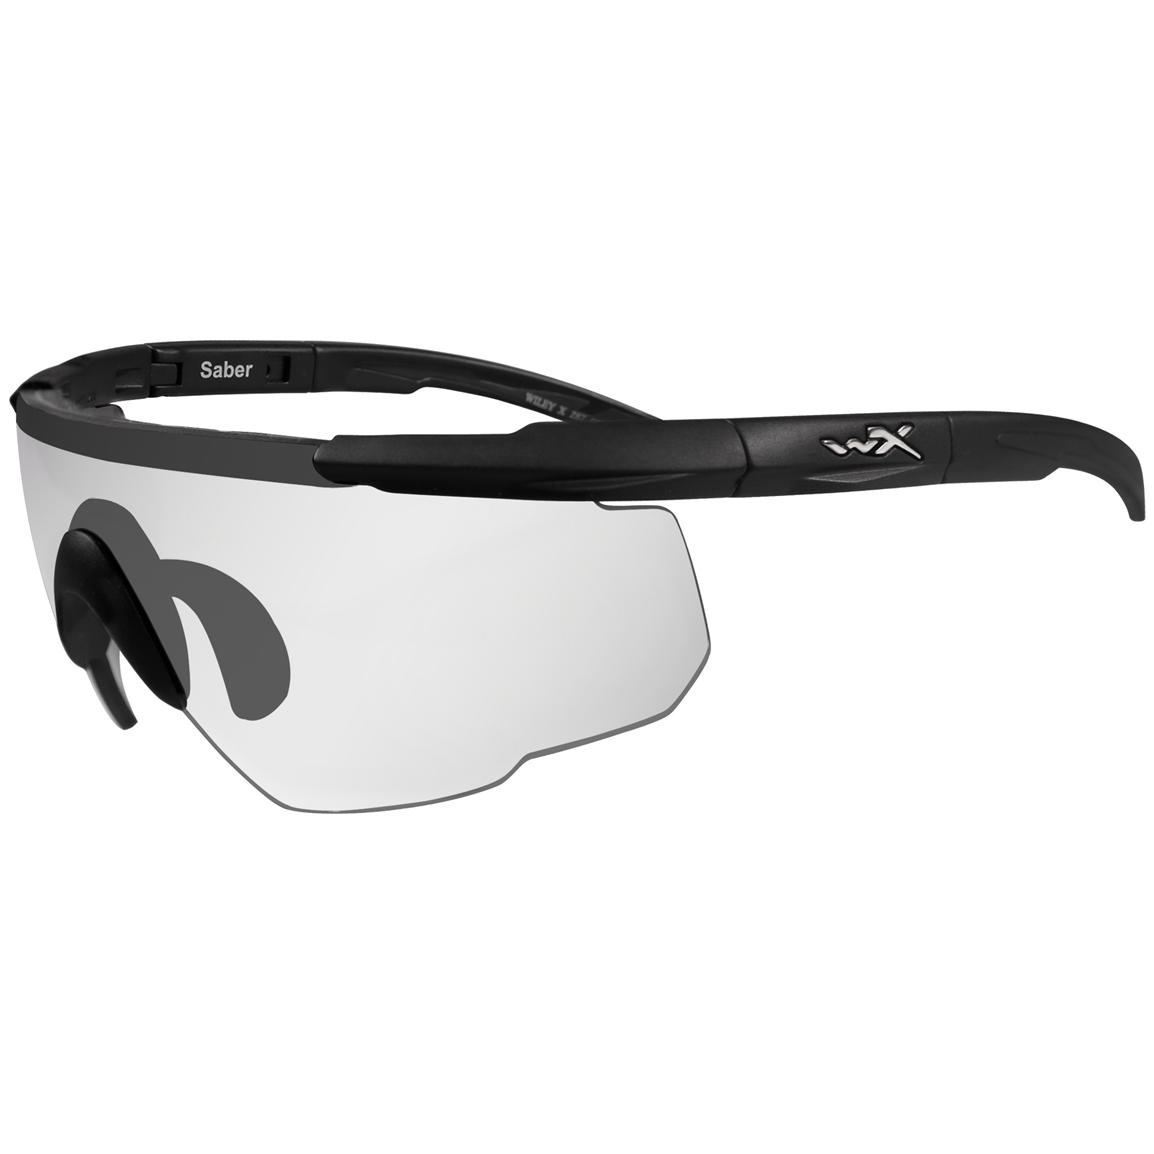 Wiley X® Saber Advanced Sunglasses, Single Lens Package, Clear